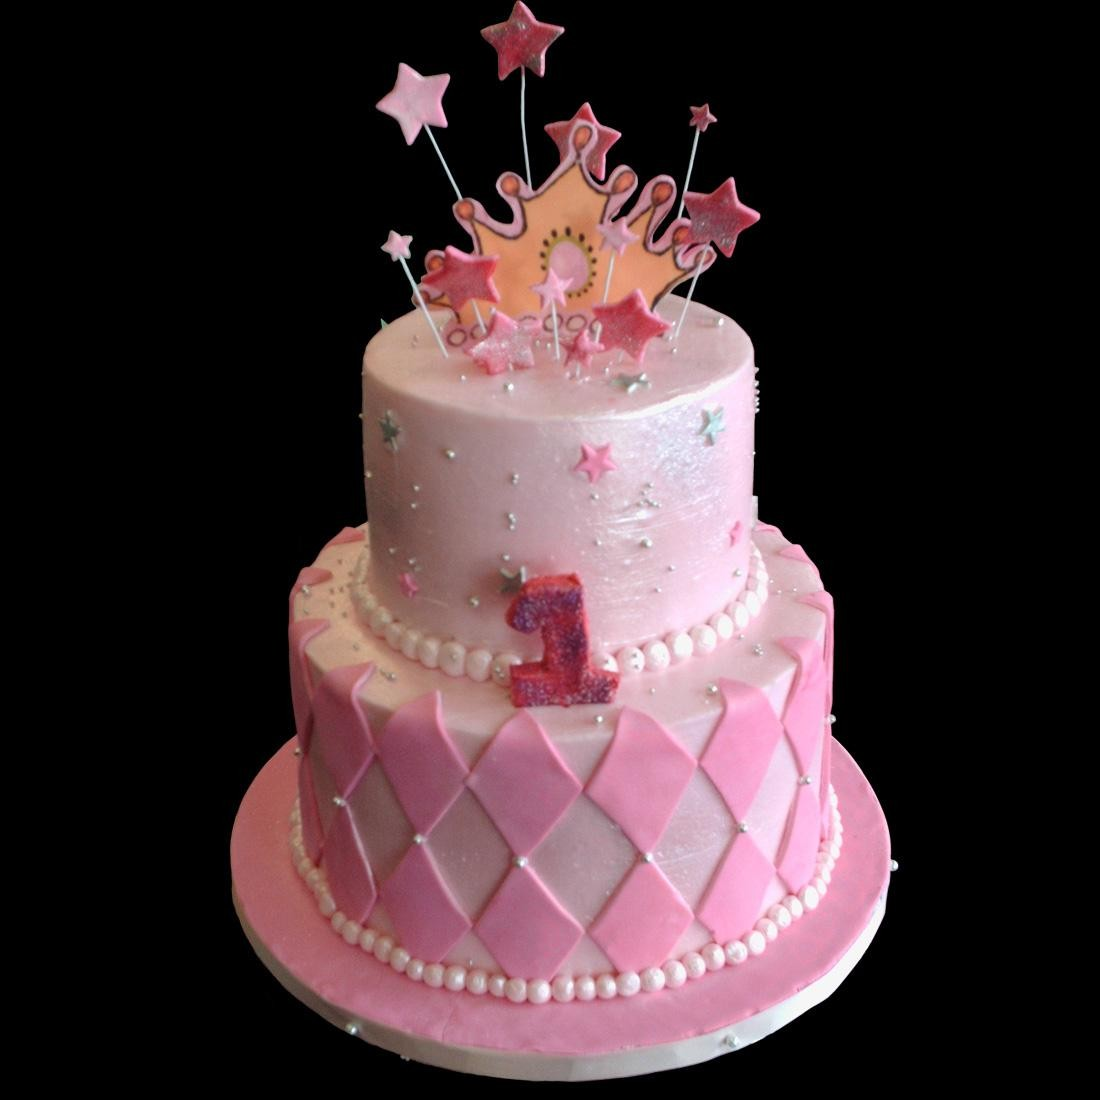 Birthday Cake Pictures Of Princess : Bluebonnet Natural Healing Therapy.com: Blog Posts for ...